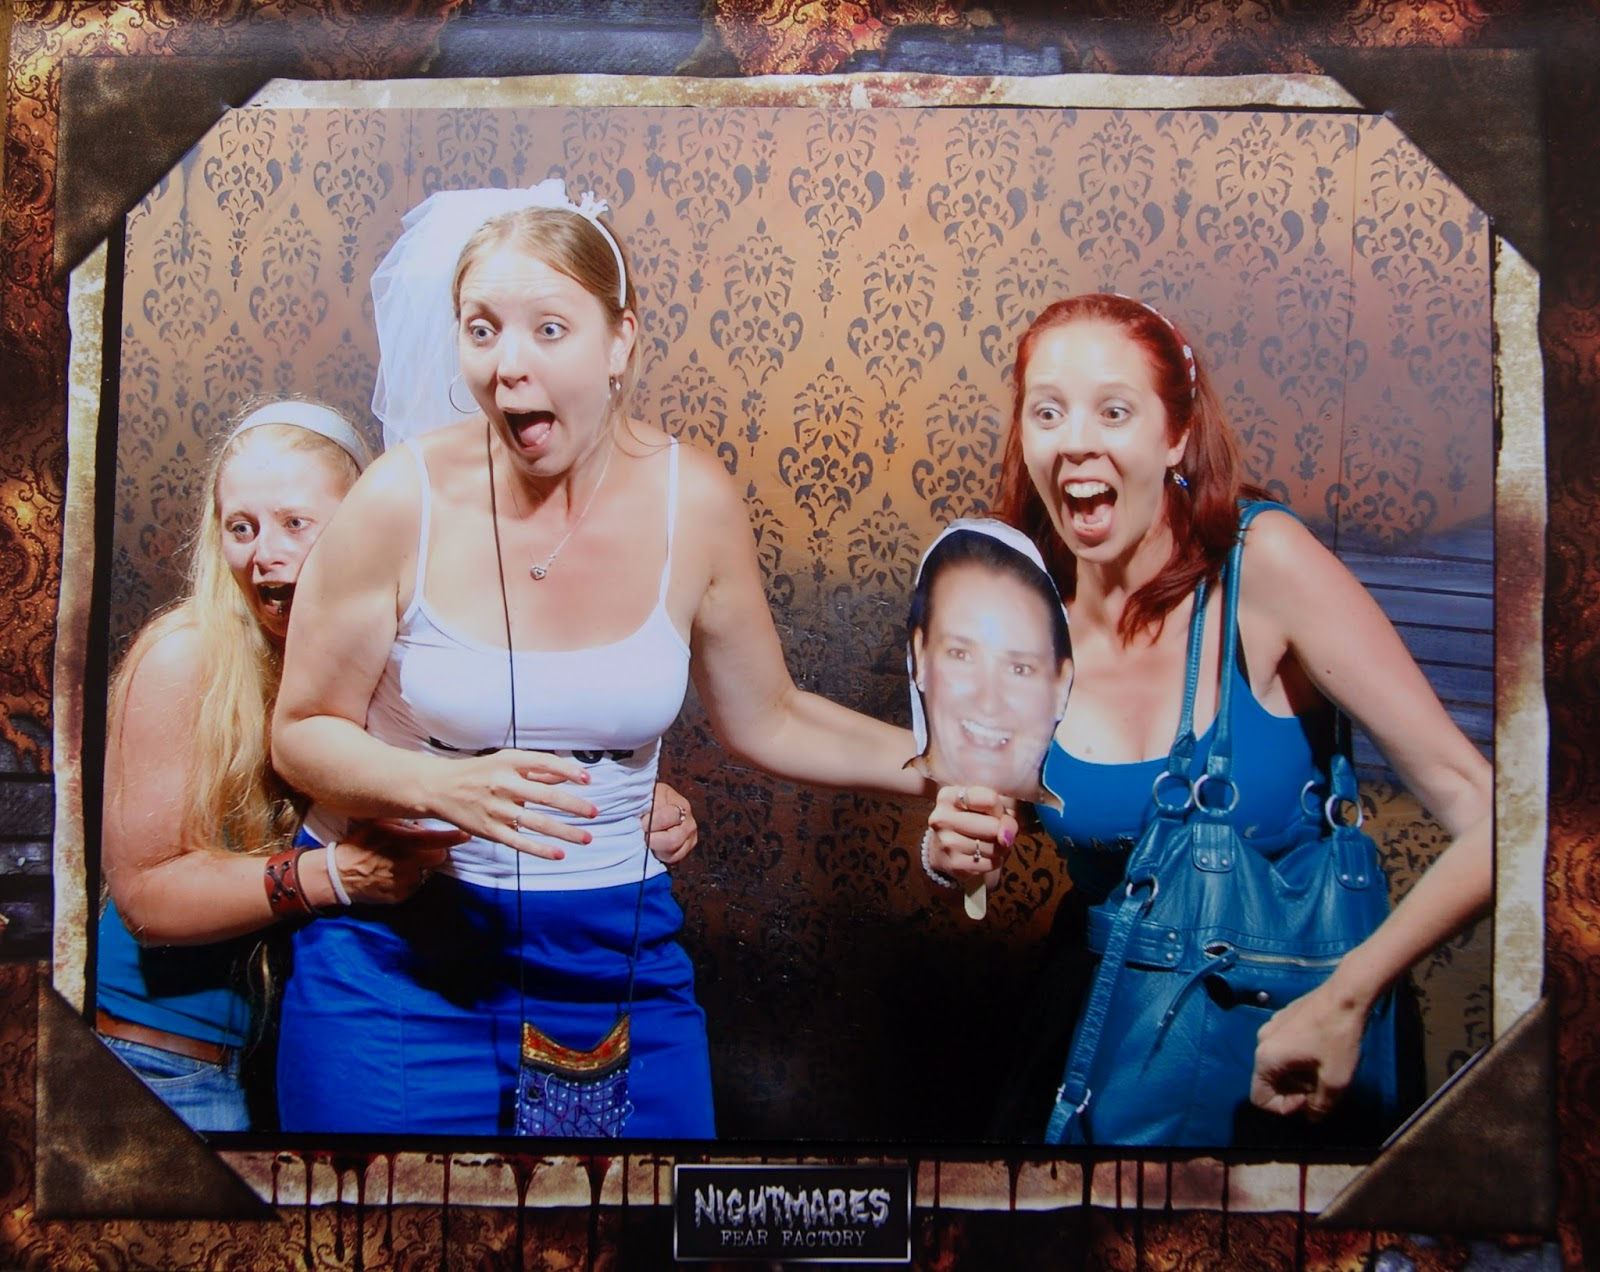 Explore, Niagara Falls, Ontario, Canada, Bachorlette Party, Schedule, Docket, Ideas, Attractions, Melanie.Ps, The Purple Scarf, Tourist, Nightmares Fear Factory, Souvenir Photo